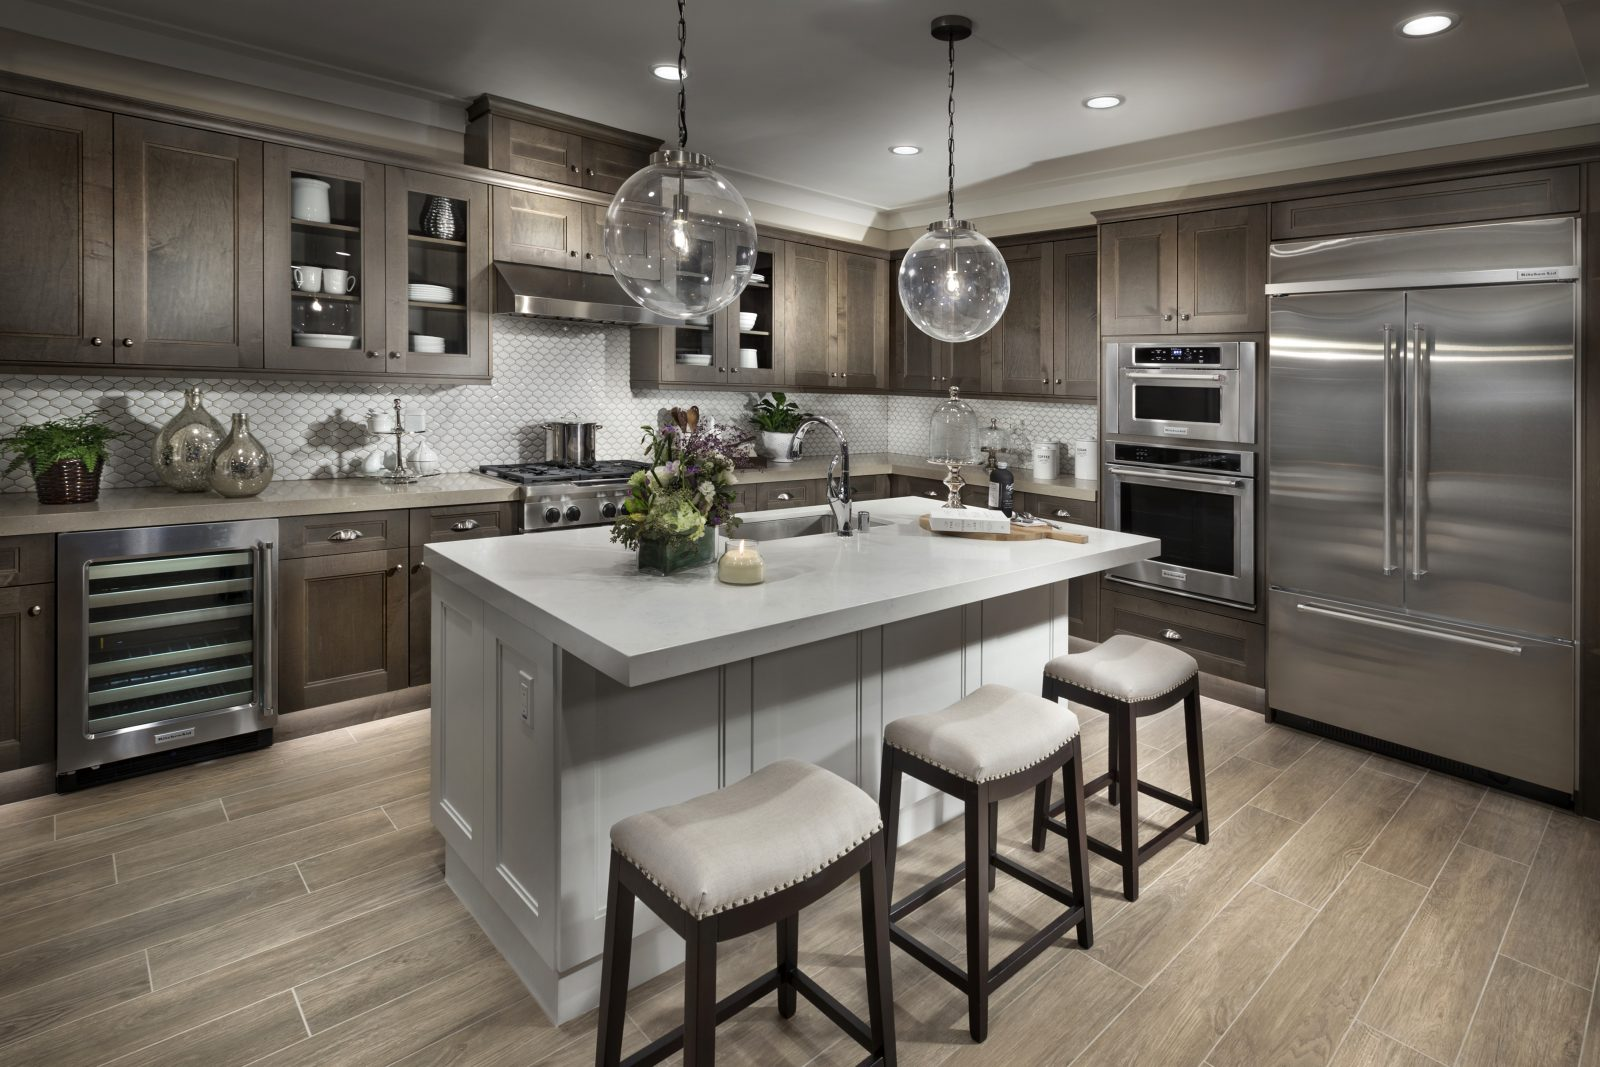 Kitchen | Legado at Portola Springs in Irvine, CA | Brookfield Residential